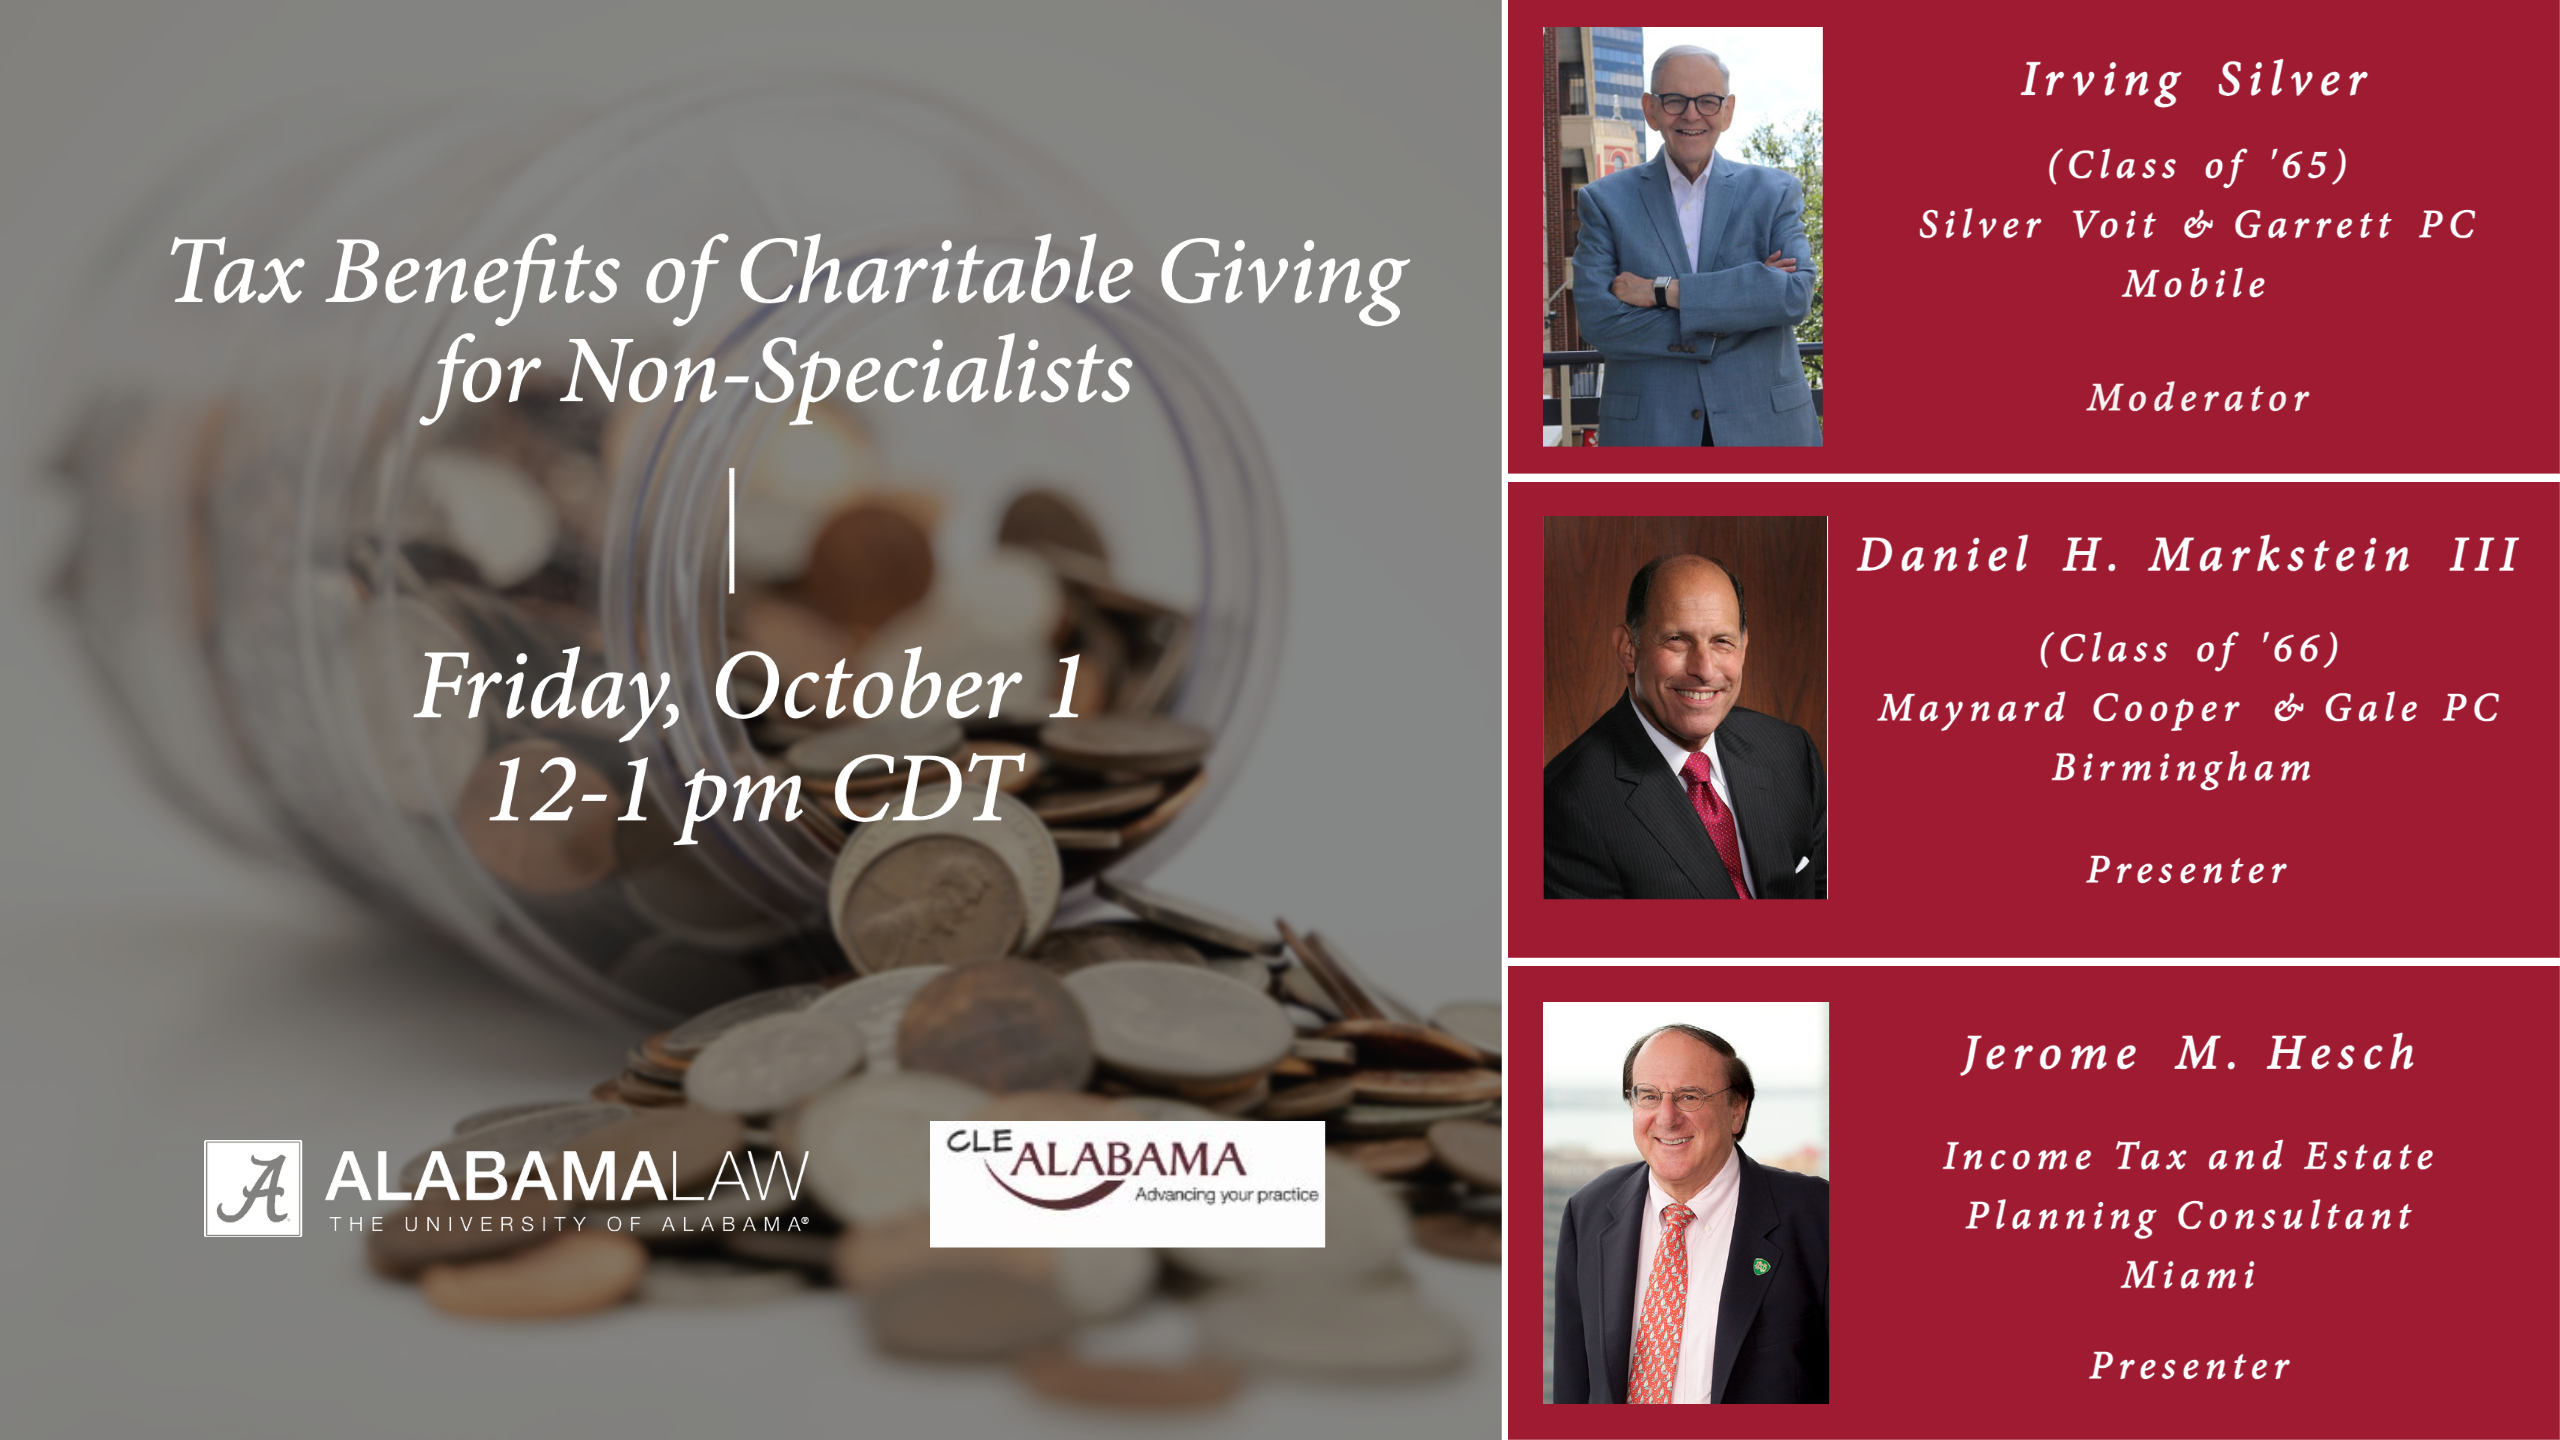 Tax Benefits of Charitable Giving for Non-Specialists Seminar--Friday, October 1 from 12-1 pm CDT. Moderated by Irving Silver with Danile H. Markstein III and Jeronme M Hesch as presenters.